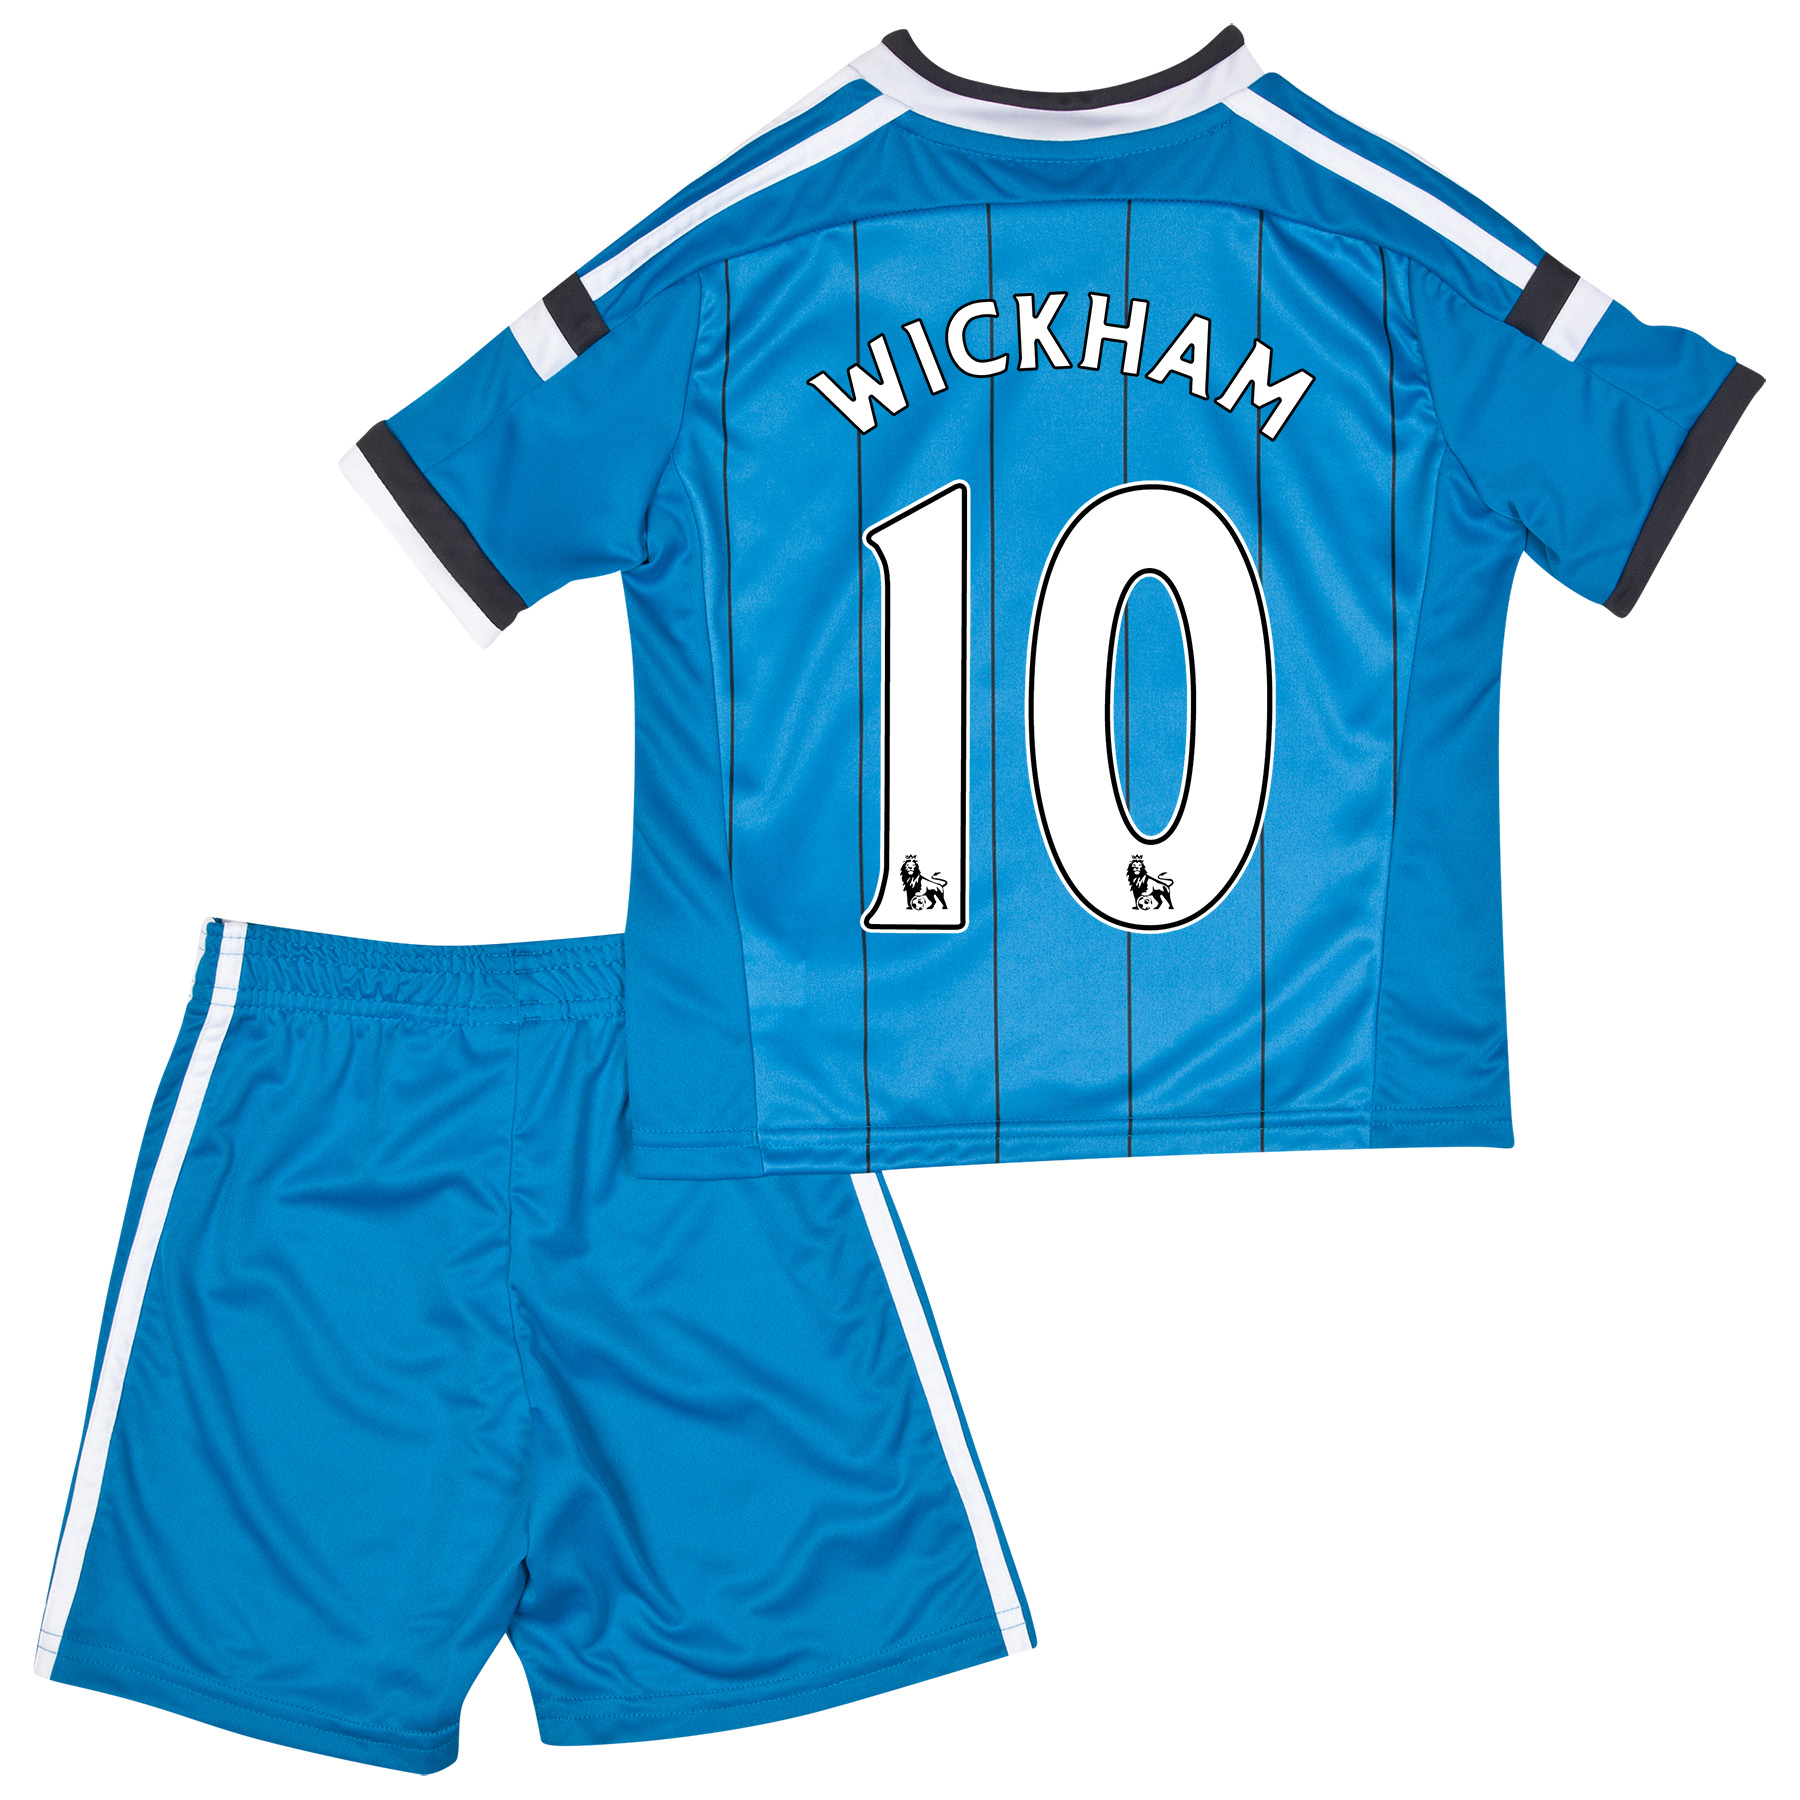 Sunderland Away Mini Kit 2014/15 Lt Blue with Wickham 10 printing